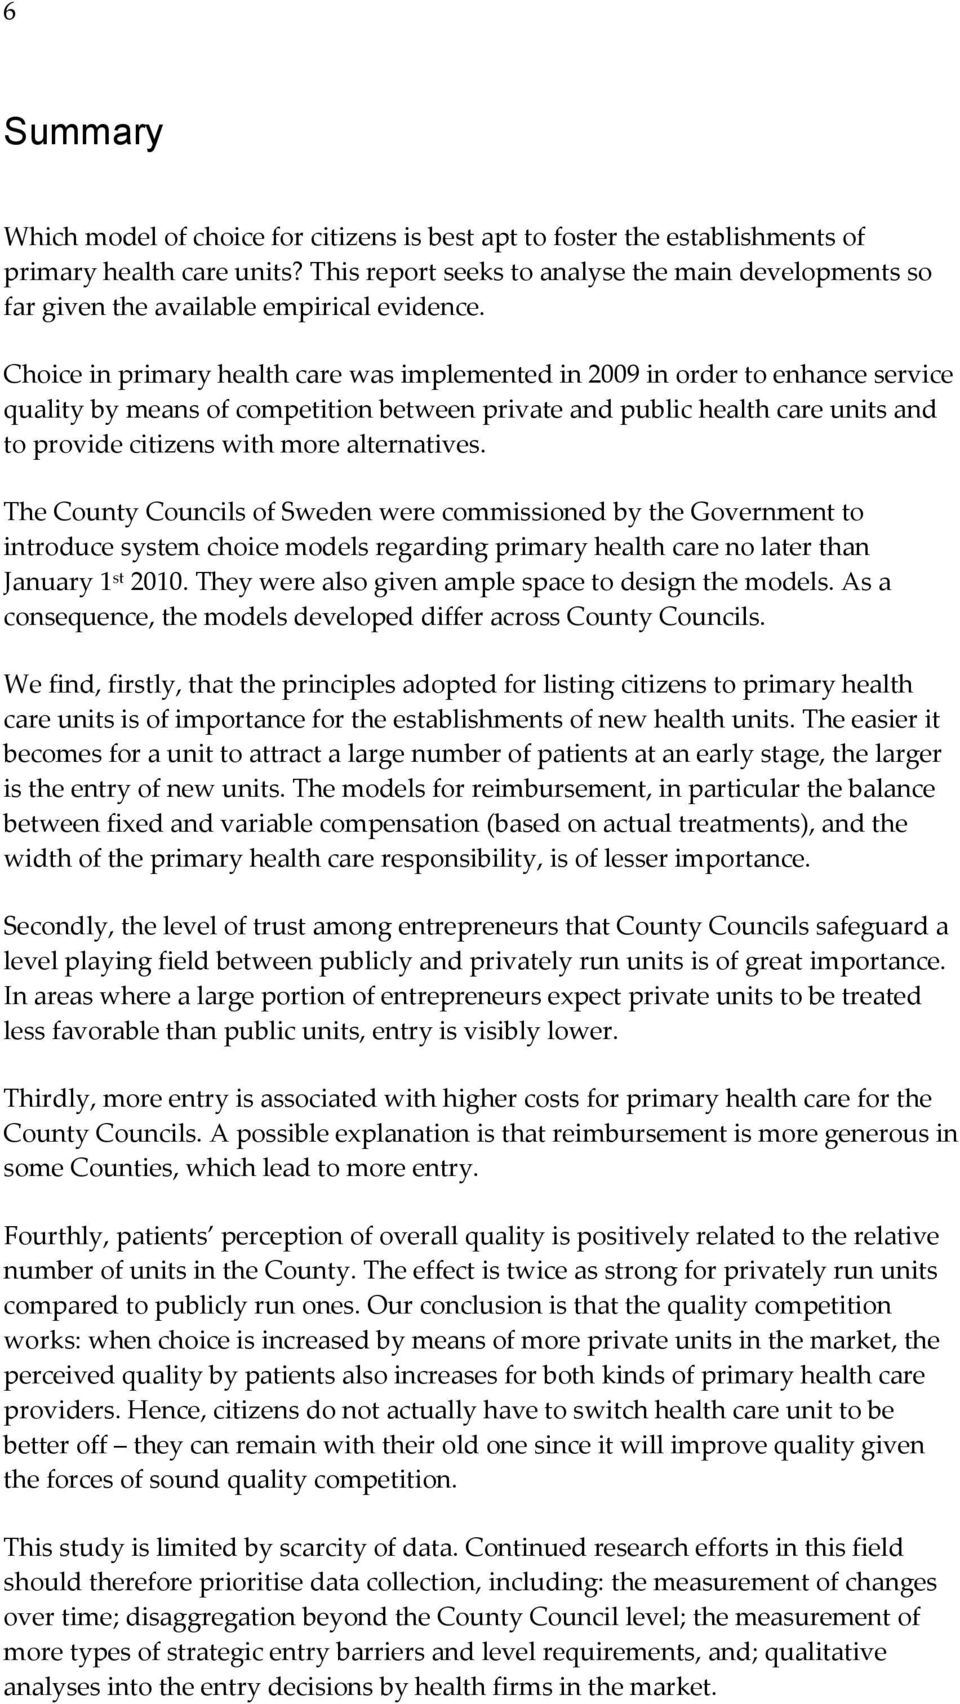 Choice in primary health care was implemented in 2009 in order to enhance service quality by means of competition between private and public health care units and to provide citizens with more